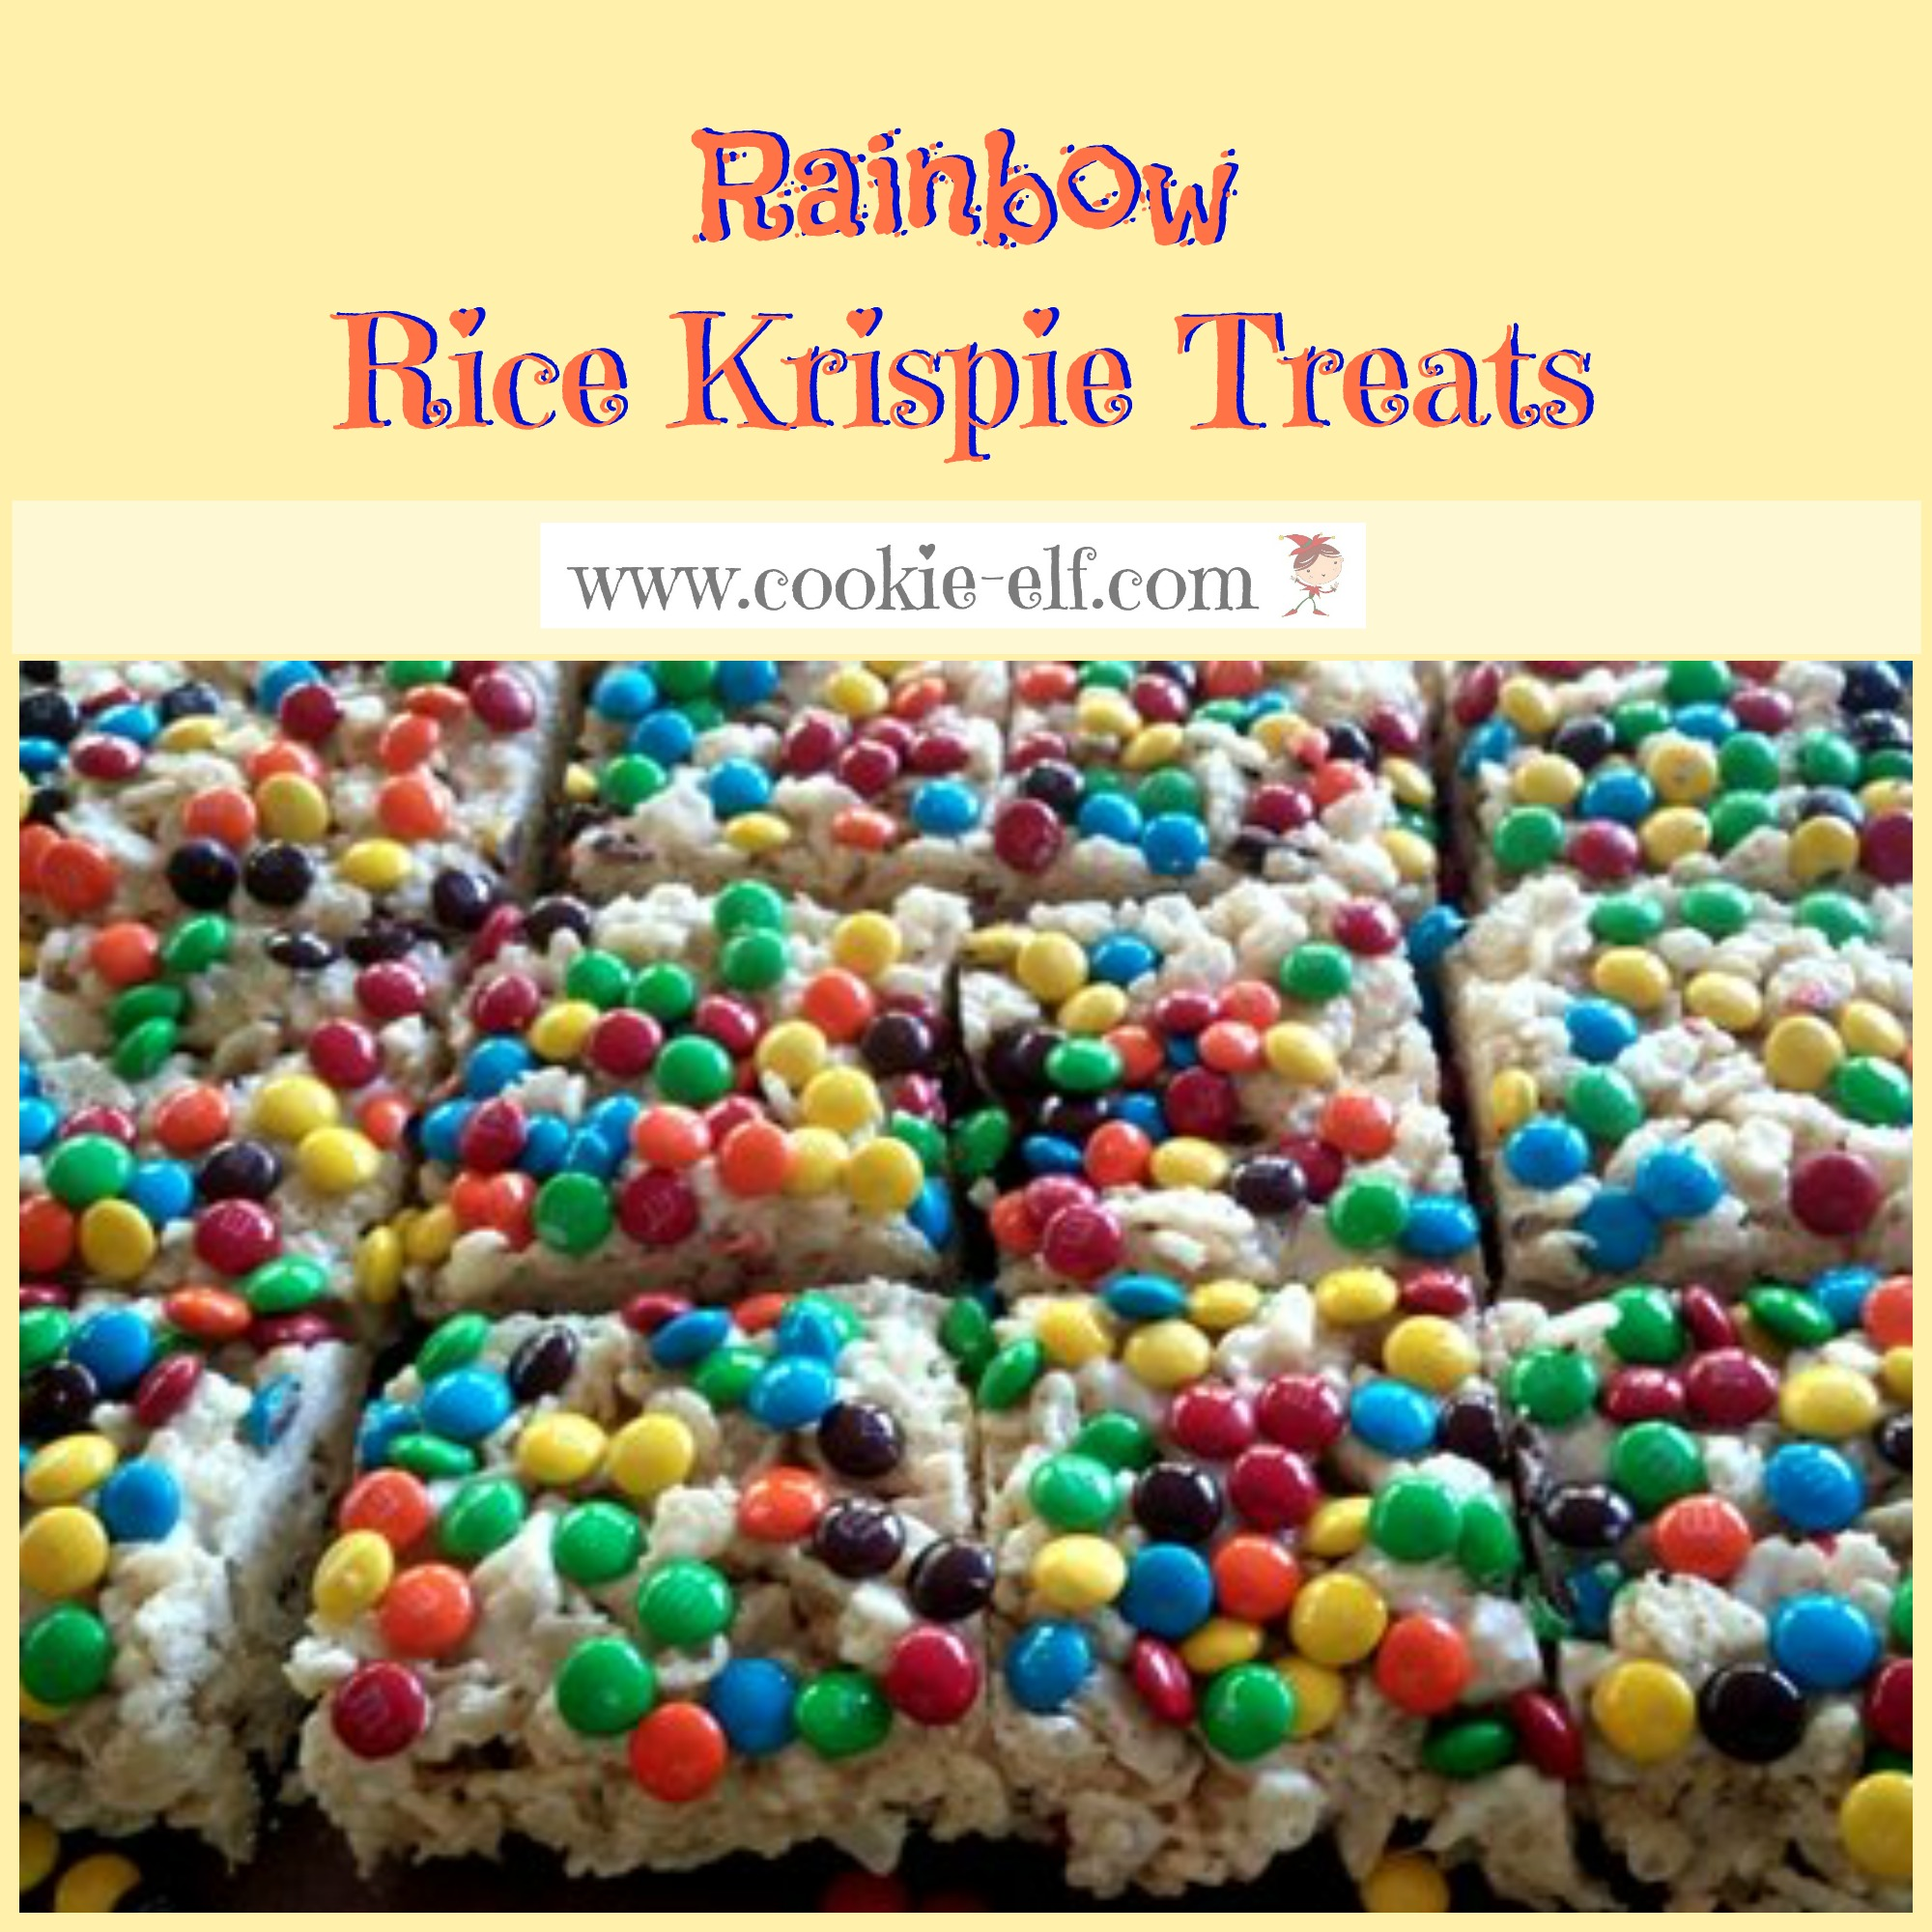 Rainbow Rice Krispie Treats: a RKT variation and super-easy no-bake cookie recipe with The Cookie Elf